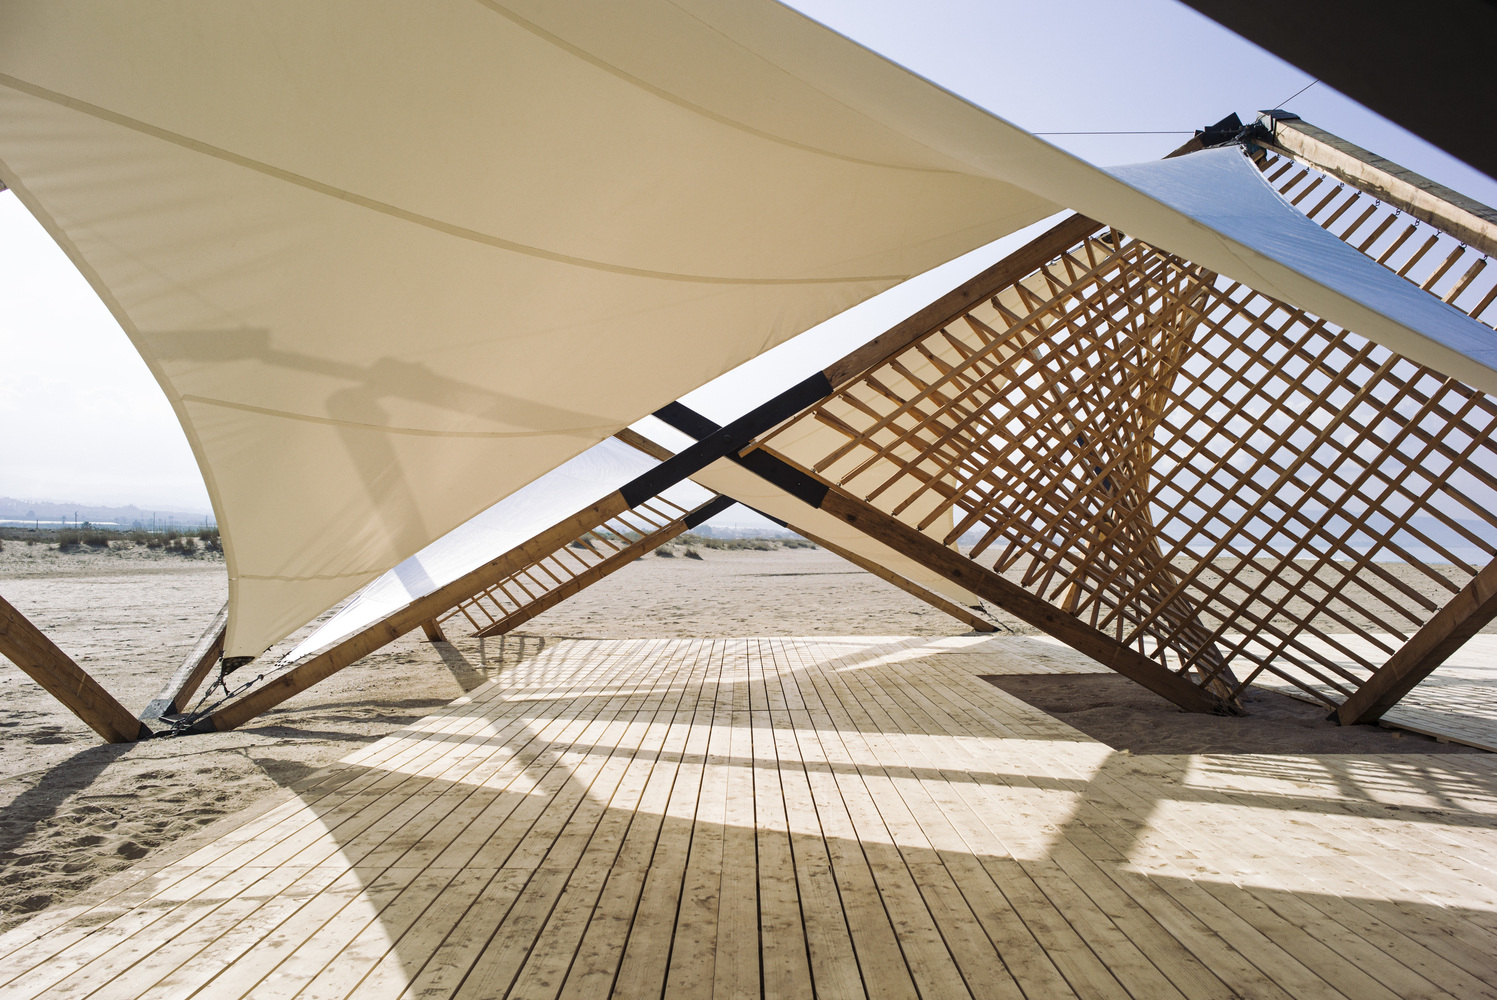 Lightweight Wooden Deployable Structure Aims For Large Social Impact  Without Leaving A Mark,© Lorenzo